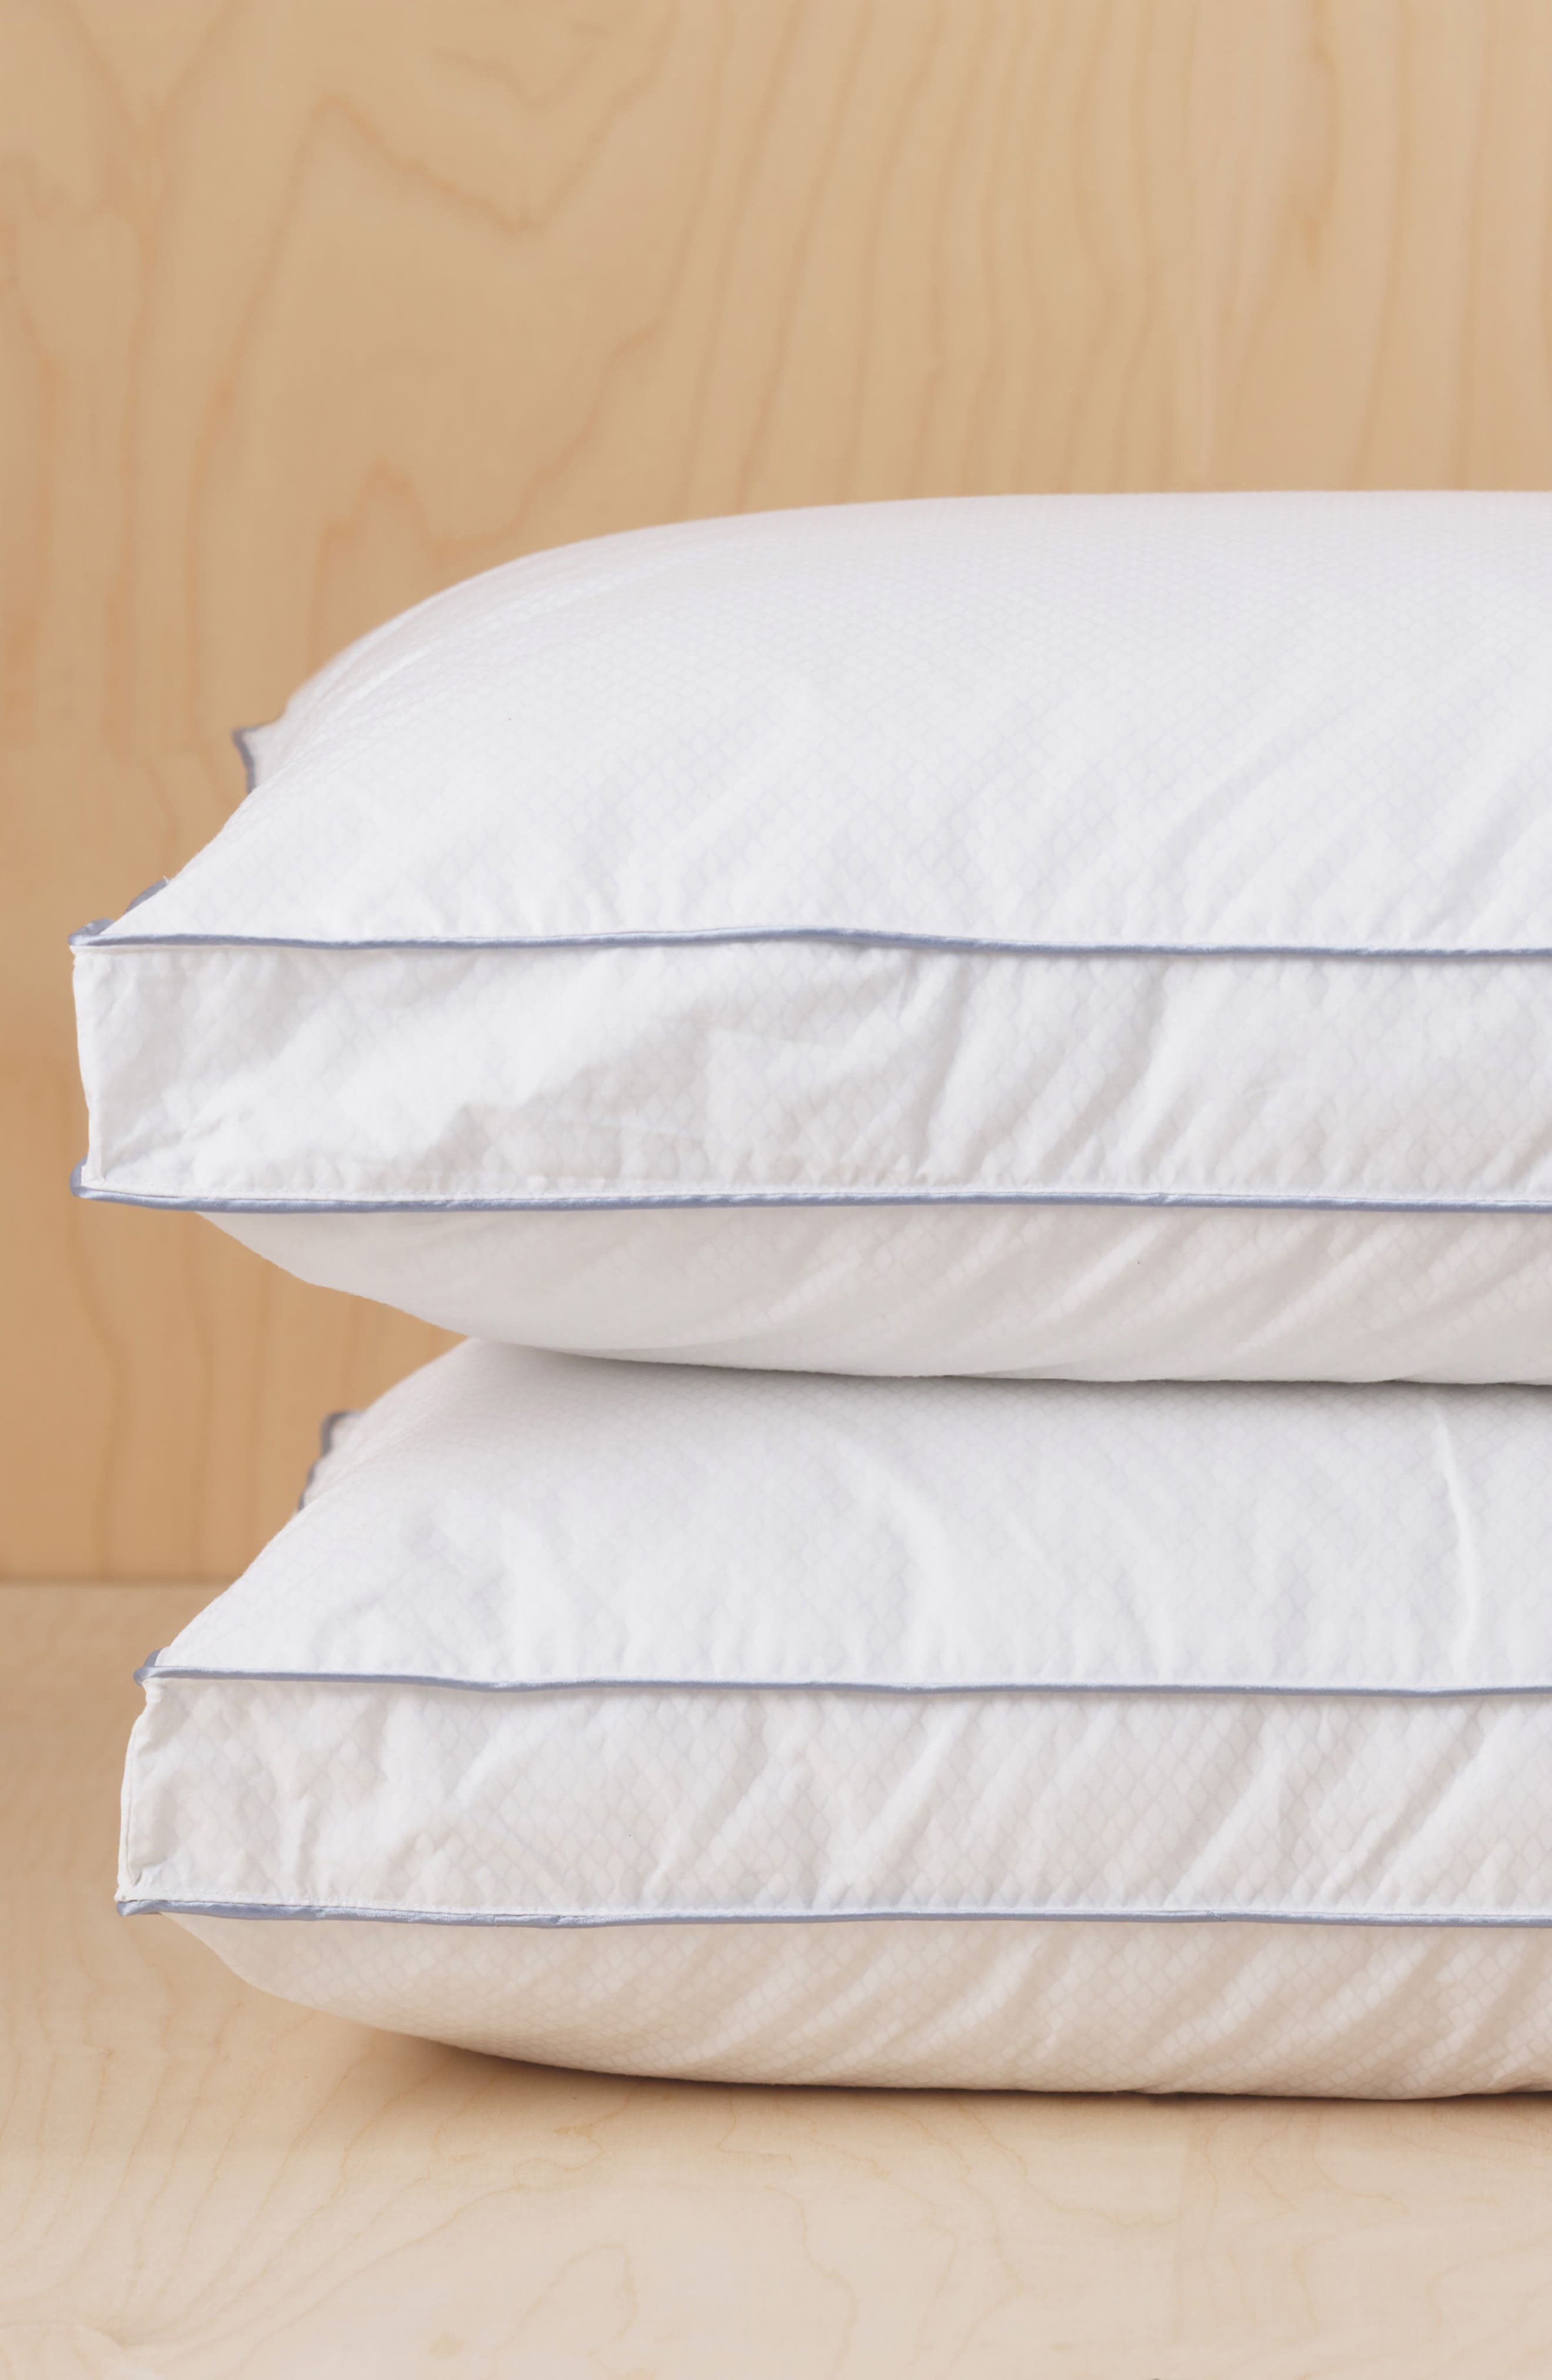 Gusseted Pillow,                             Alternate thumbnail 4, color,                             White